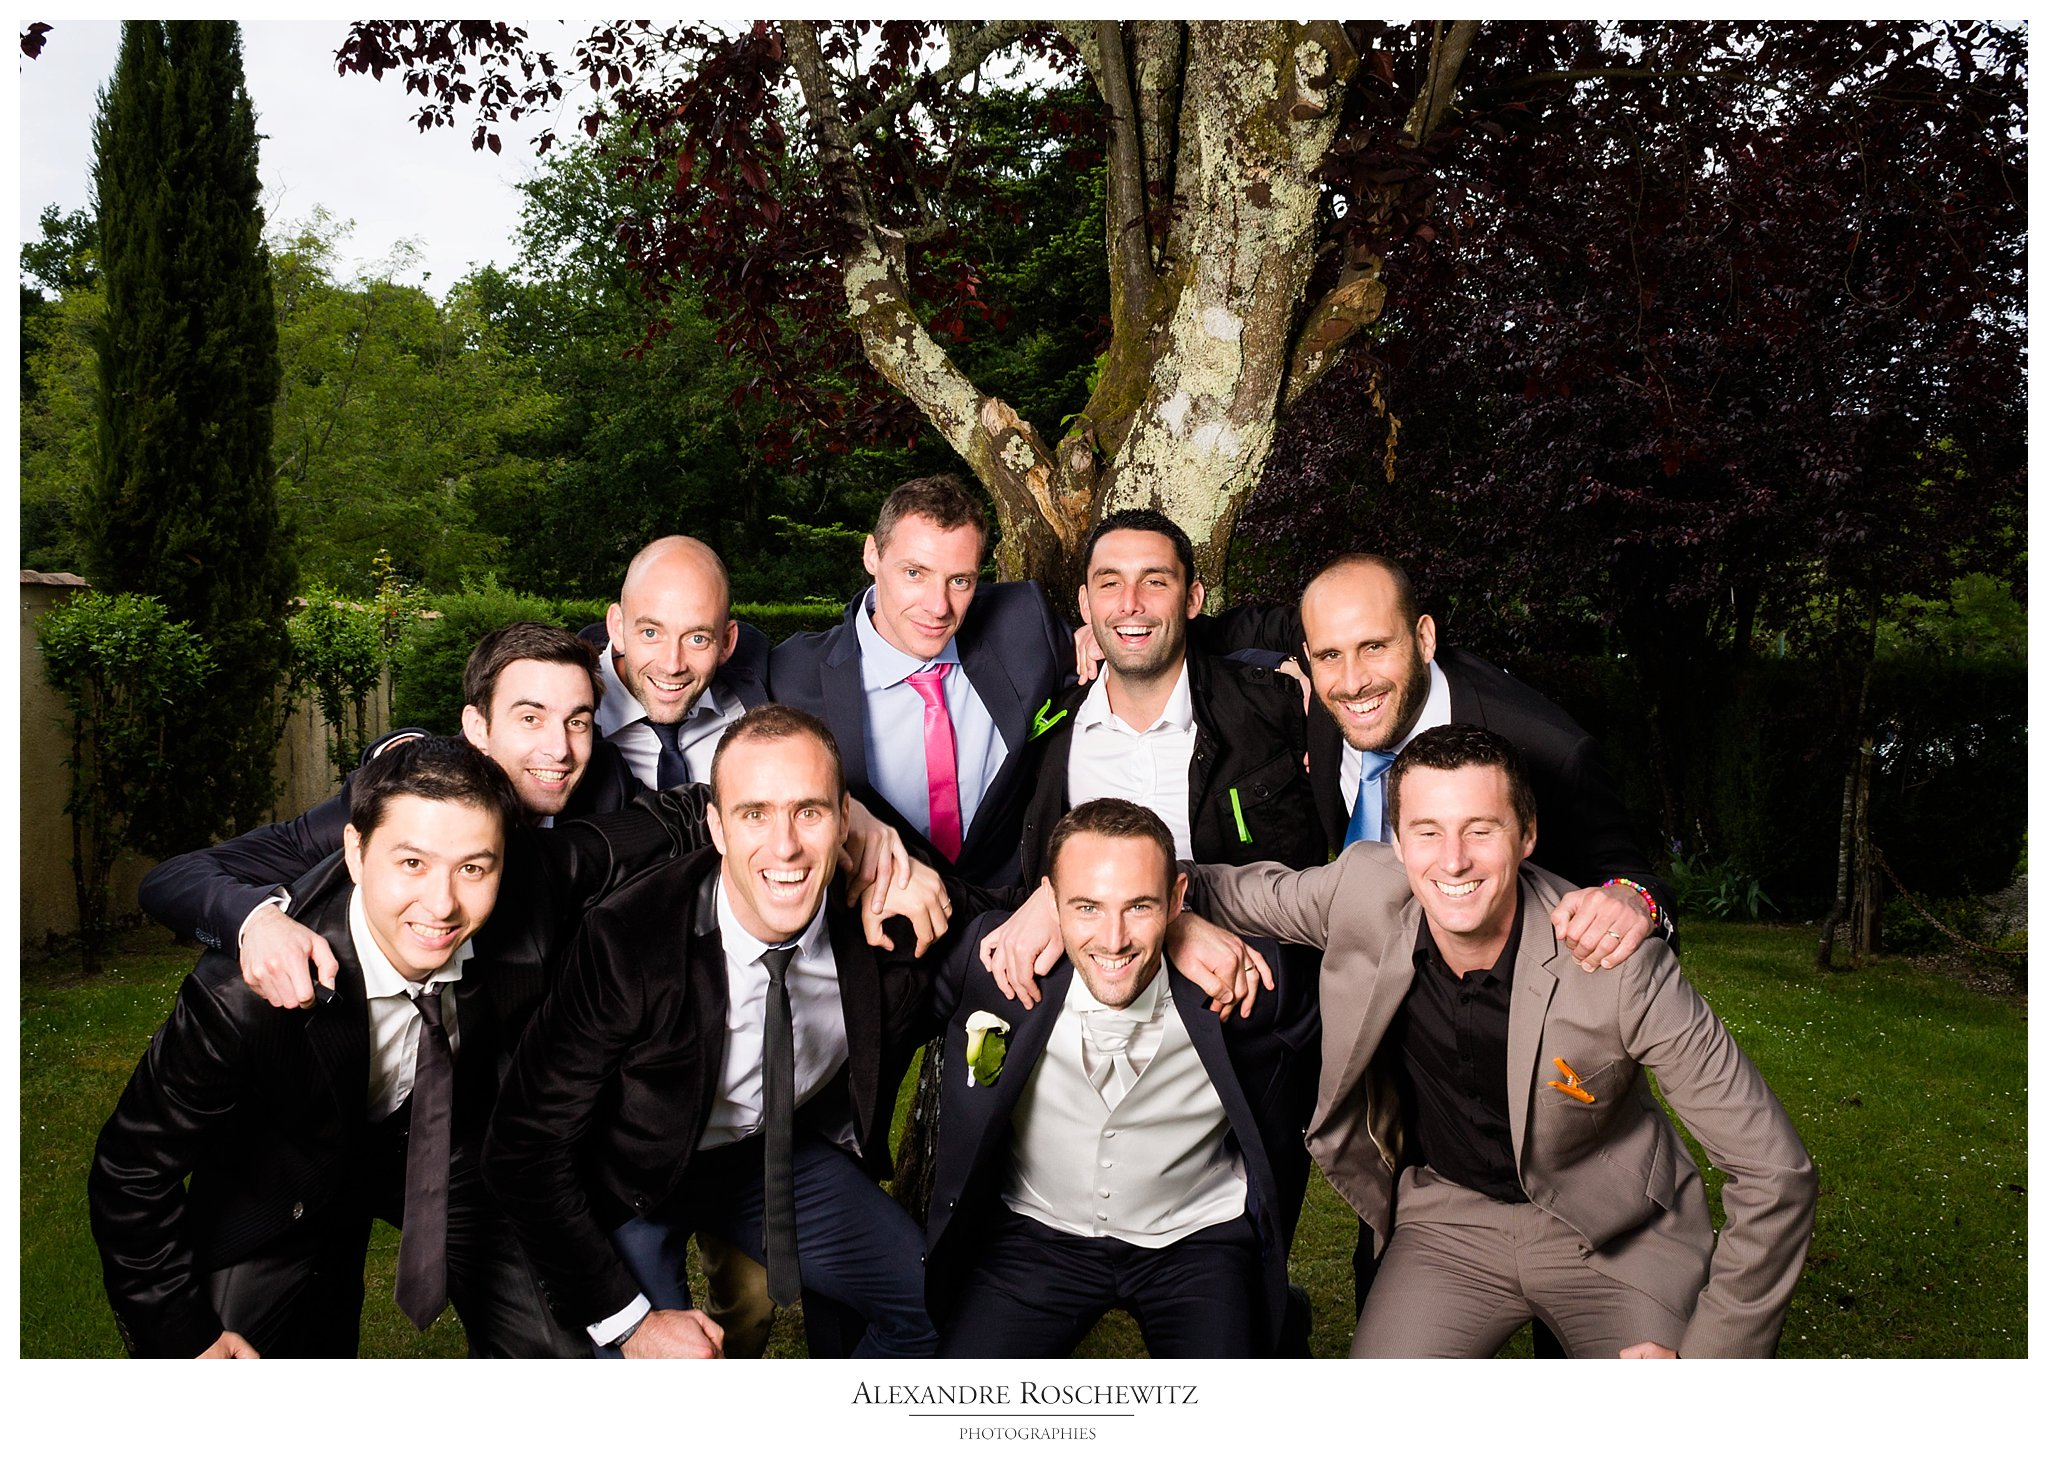 photobooth-mariage-merignac-gironde-maud-anthony-chateau-cujac-alexandre-roschewitz-photographies_1246_2048px